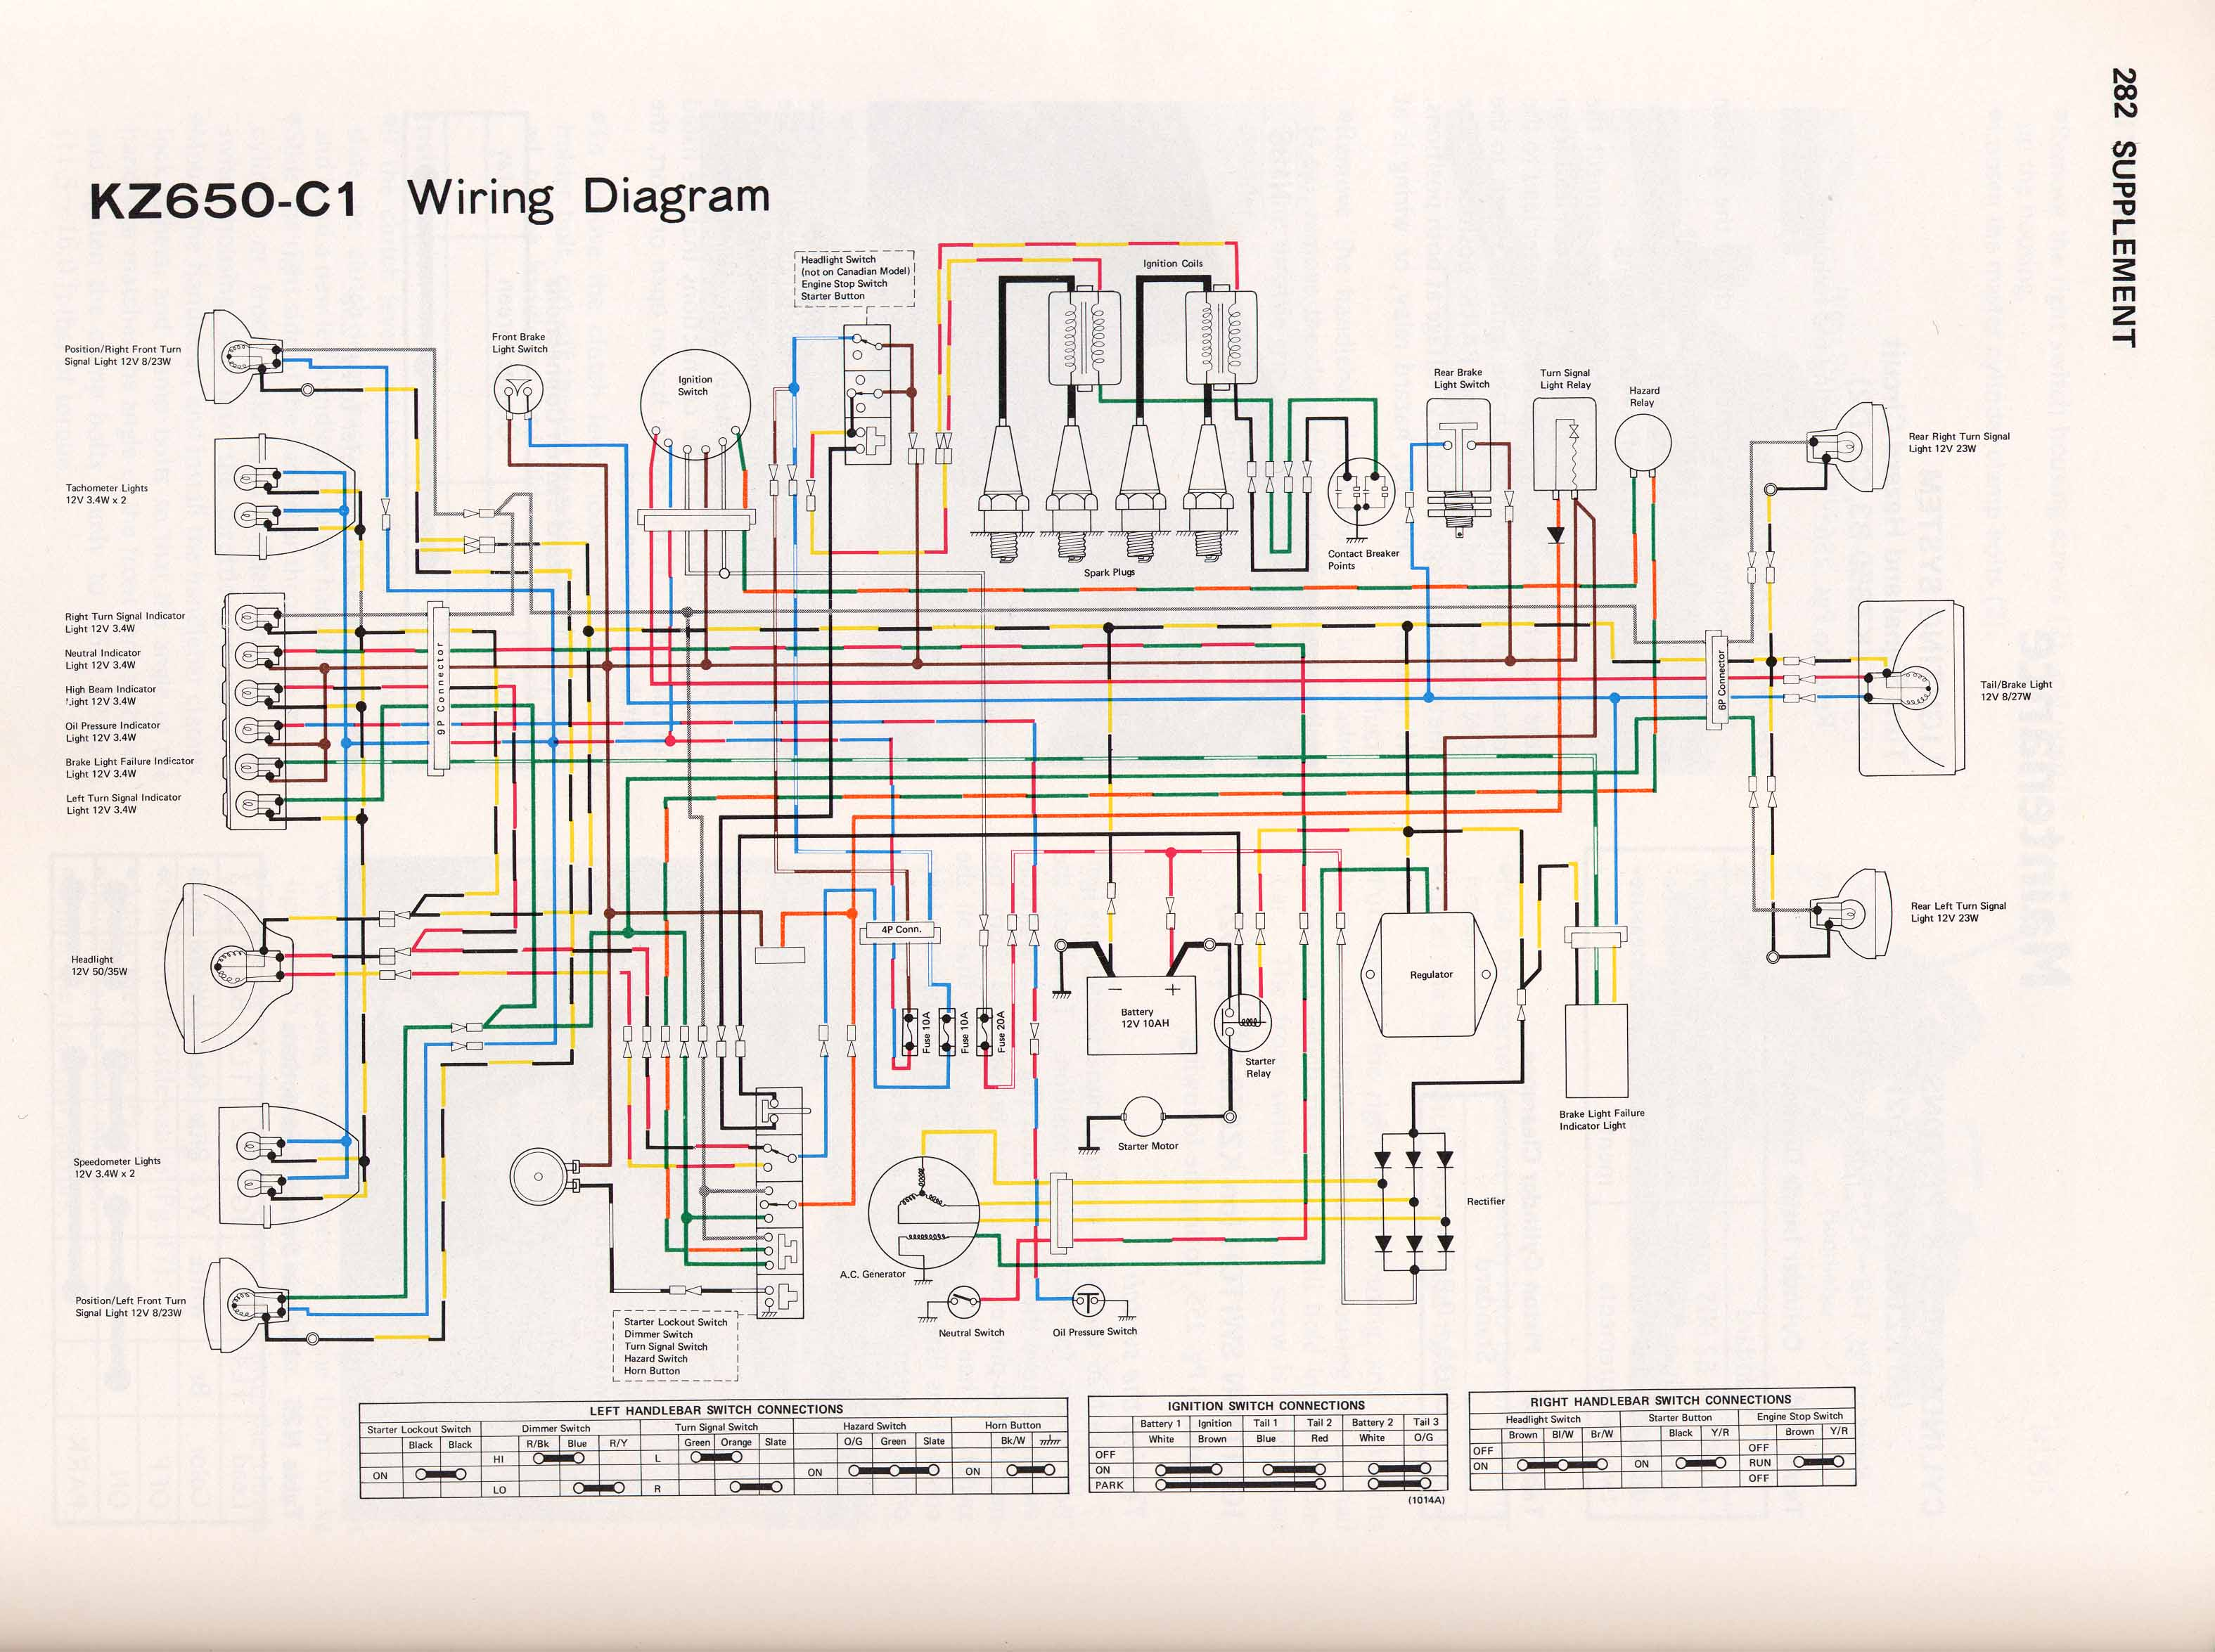 1993 Kawasaki Mule Wiring Diagram Worksheet And 2006 3010 Wire 1978 Kz650 Will Be A Thing U2022 Rh Exploreandmore Co Uk 610